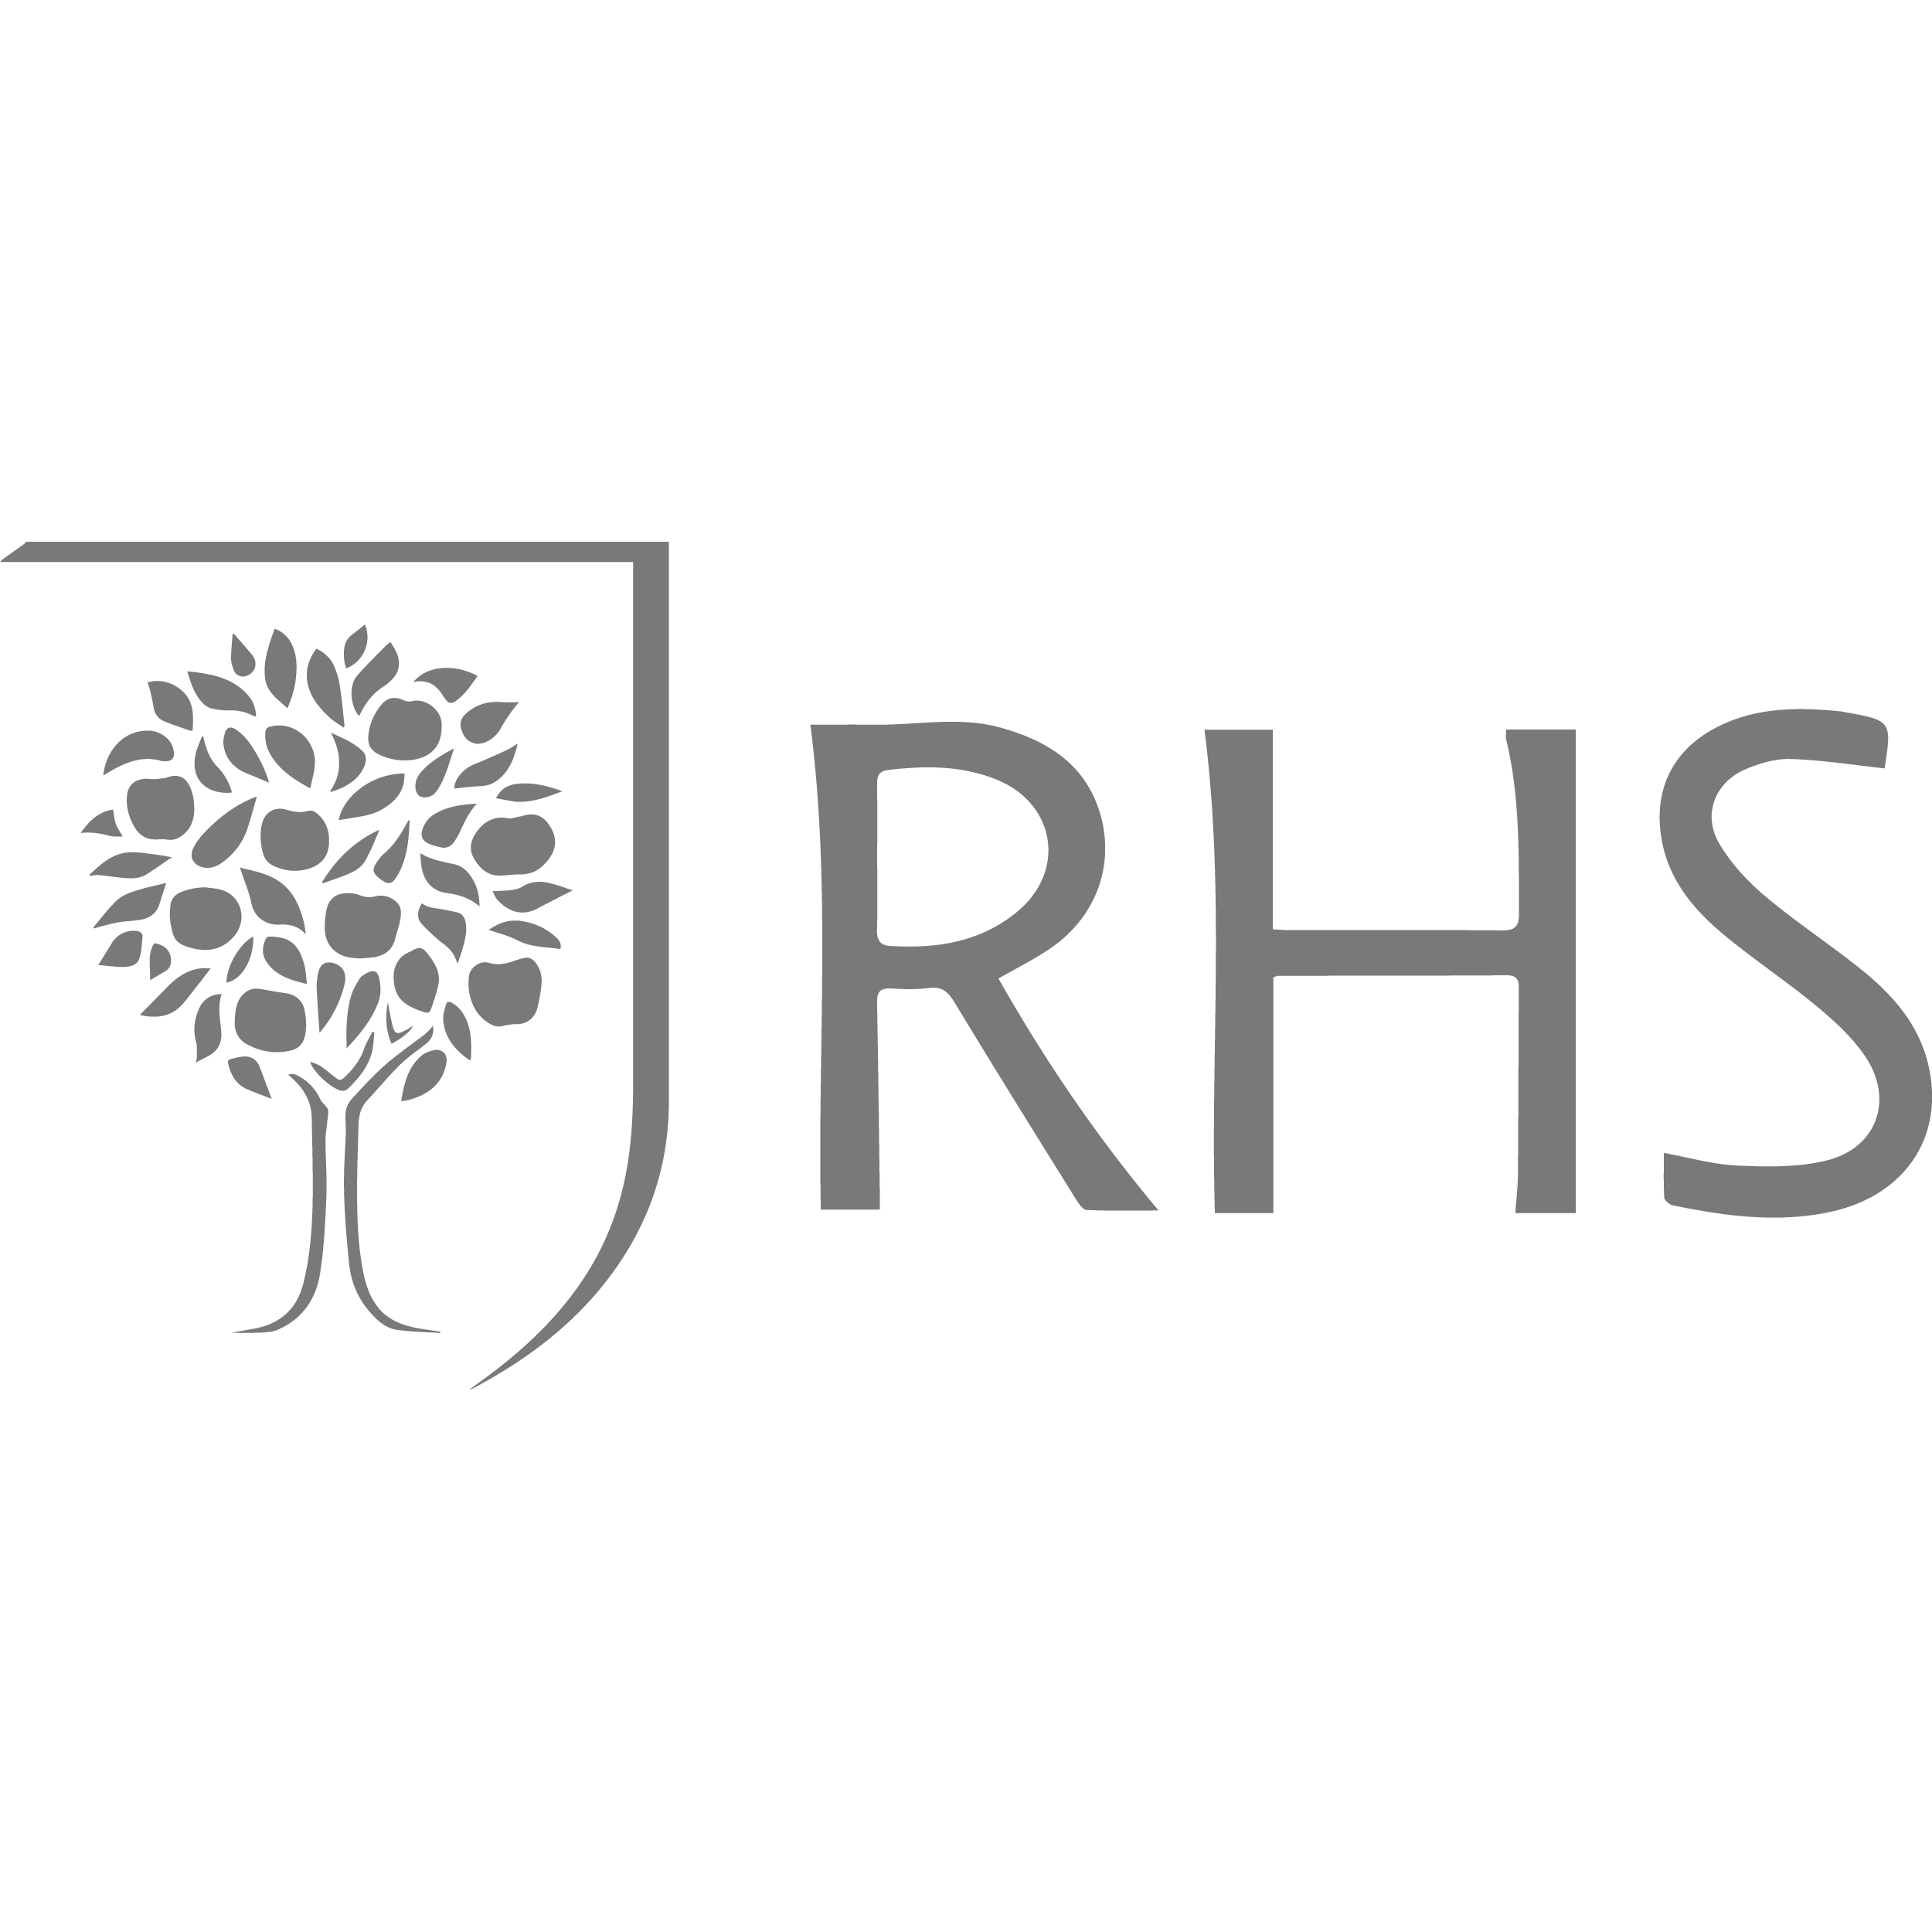 The Royal Horticultural Society